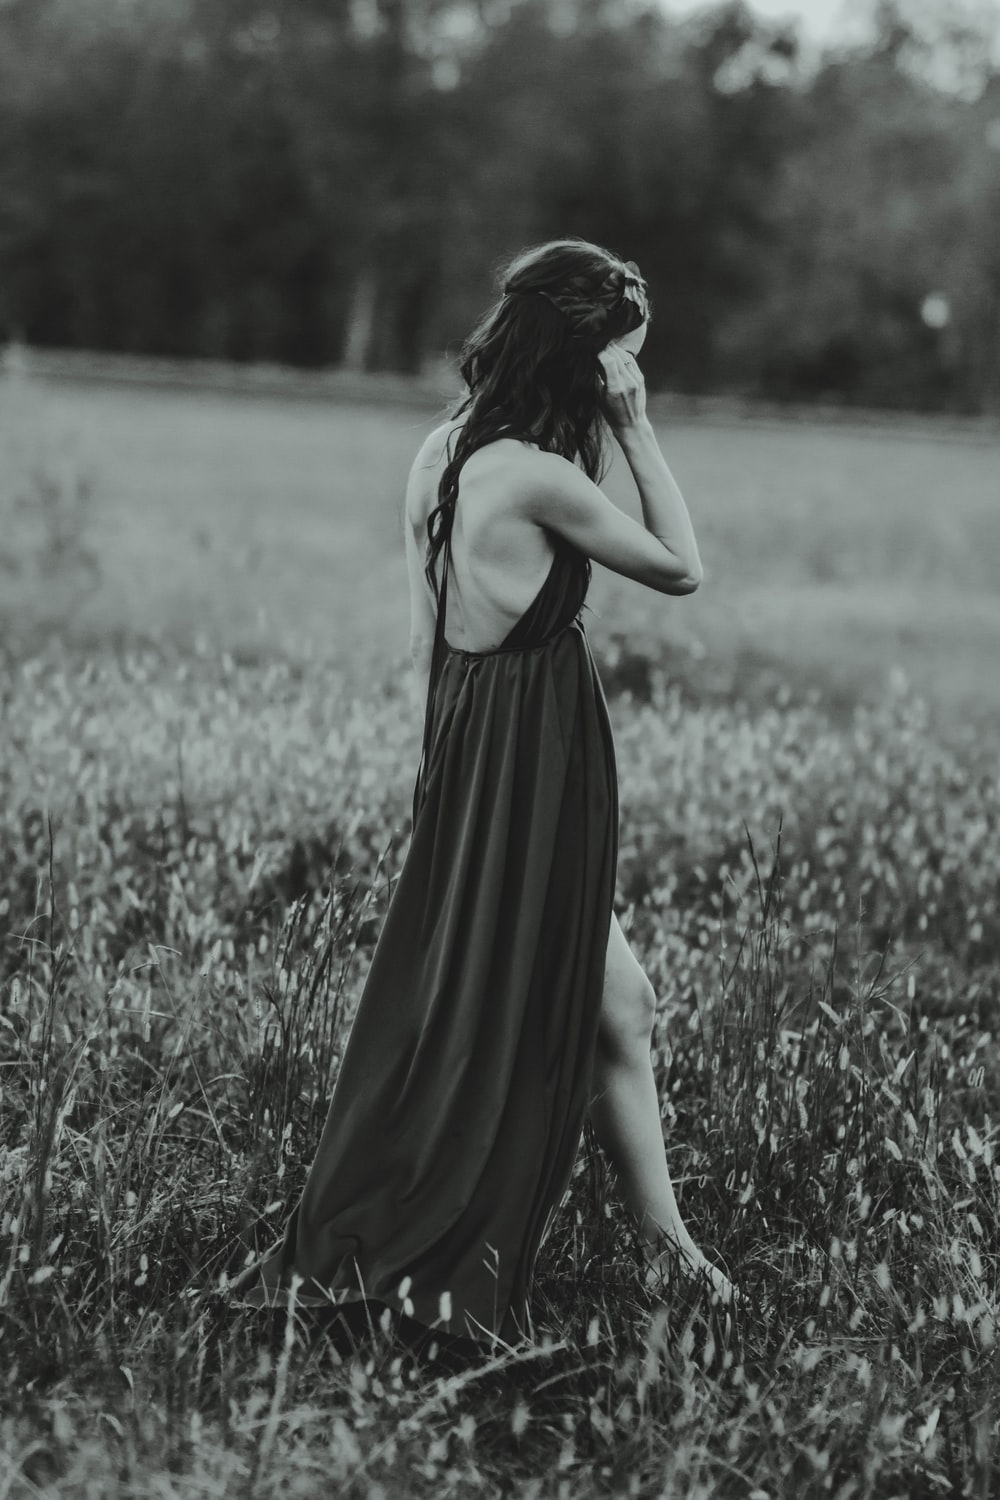 grayscale photography of woman wearing dress on grass field while standing